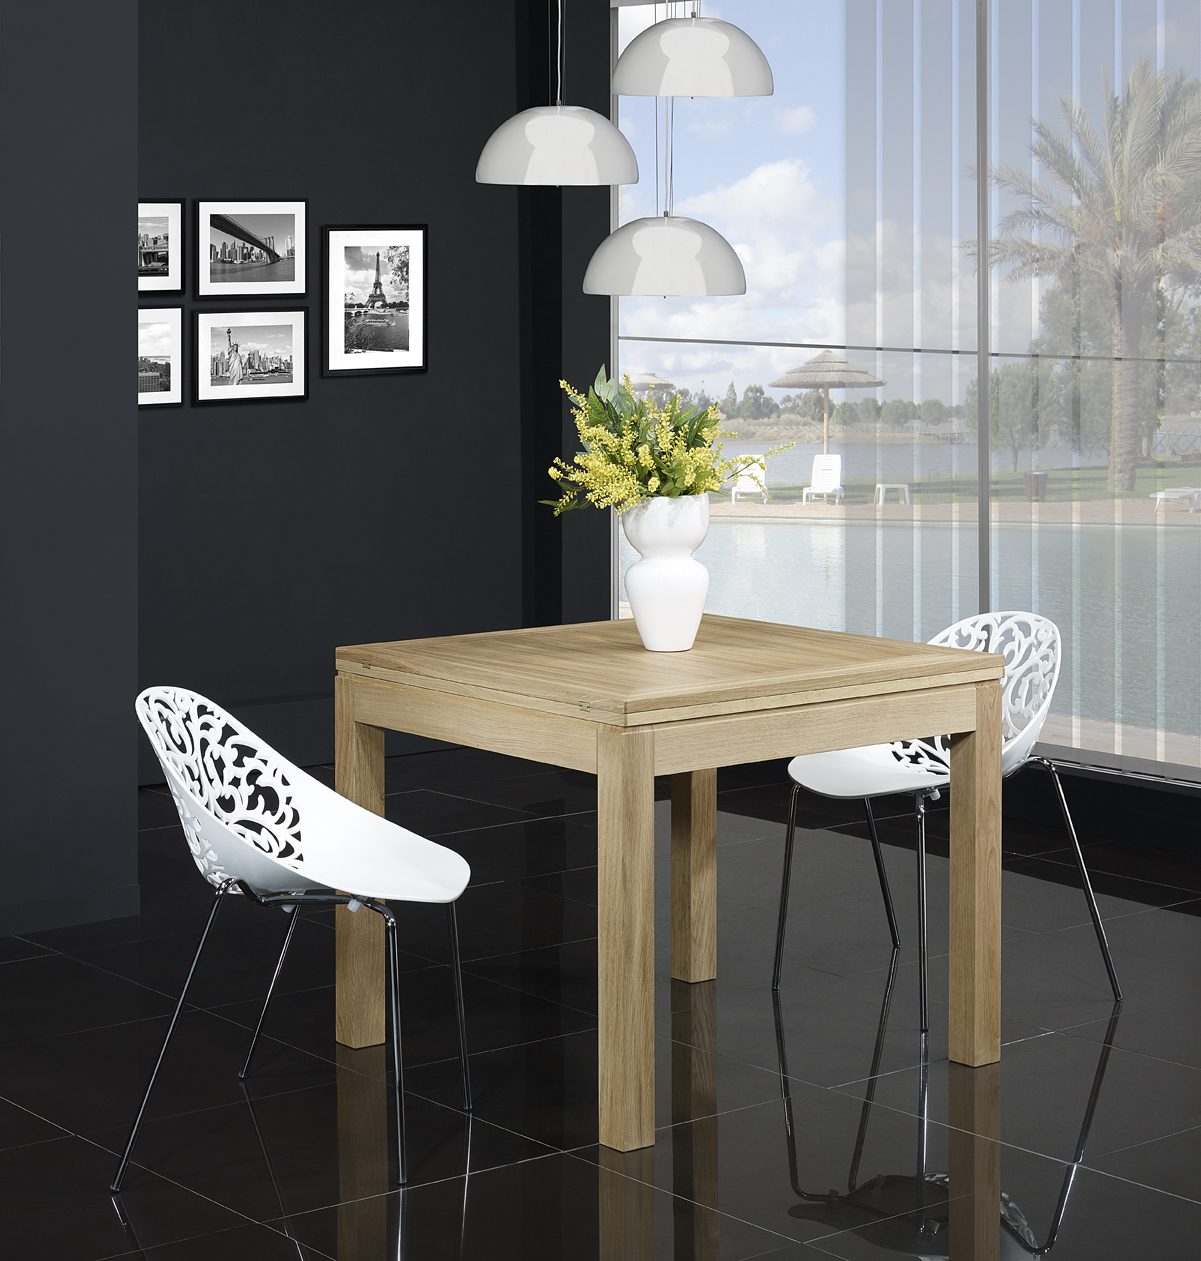 Table de repas 90x90 en ch ne massif de style contemporain - Plateau de table chene massif ...